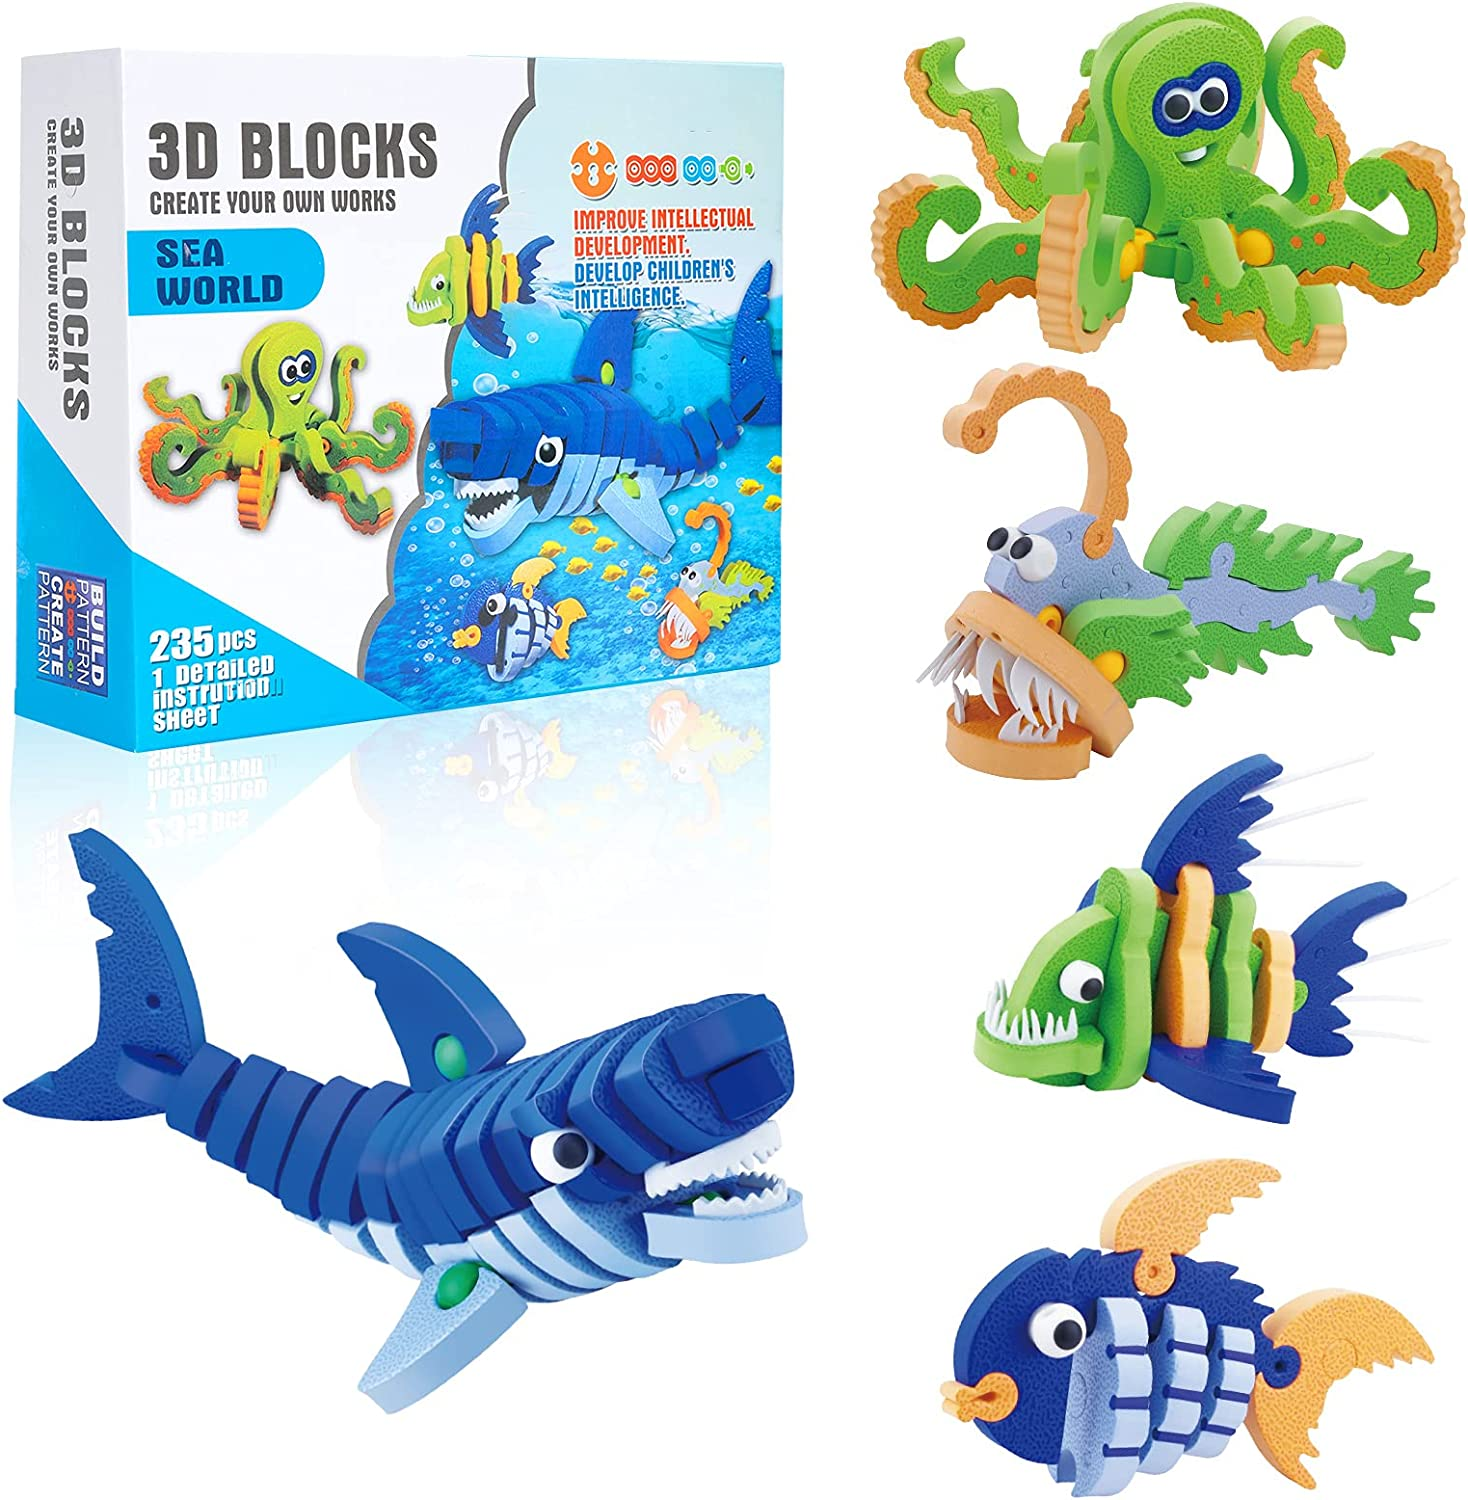 20D Puzzles, 20 in 20 Soft EVA Building Blocks STEM Construction Educational  Toy for 20+ Year Old Kids Boys Girls Marine Animal